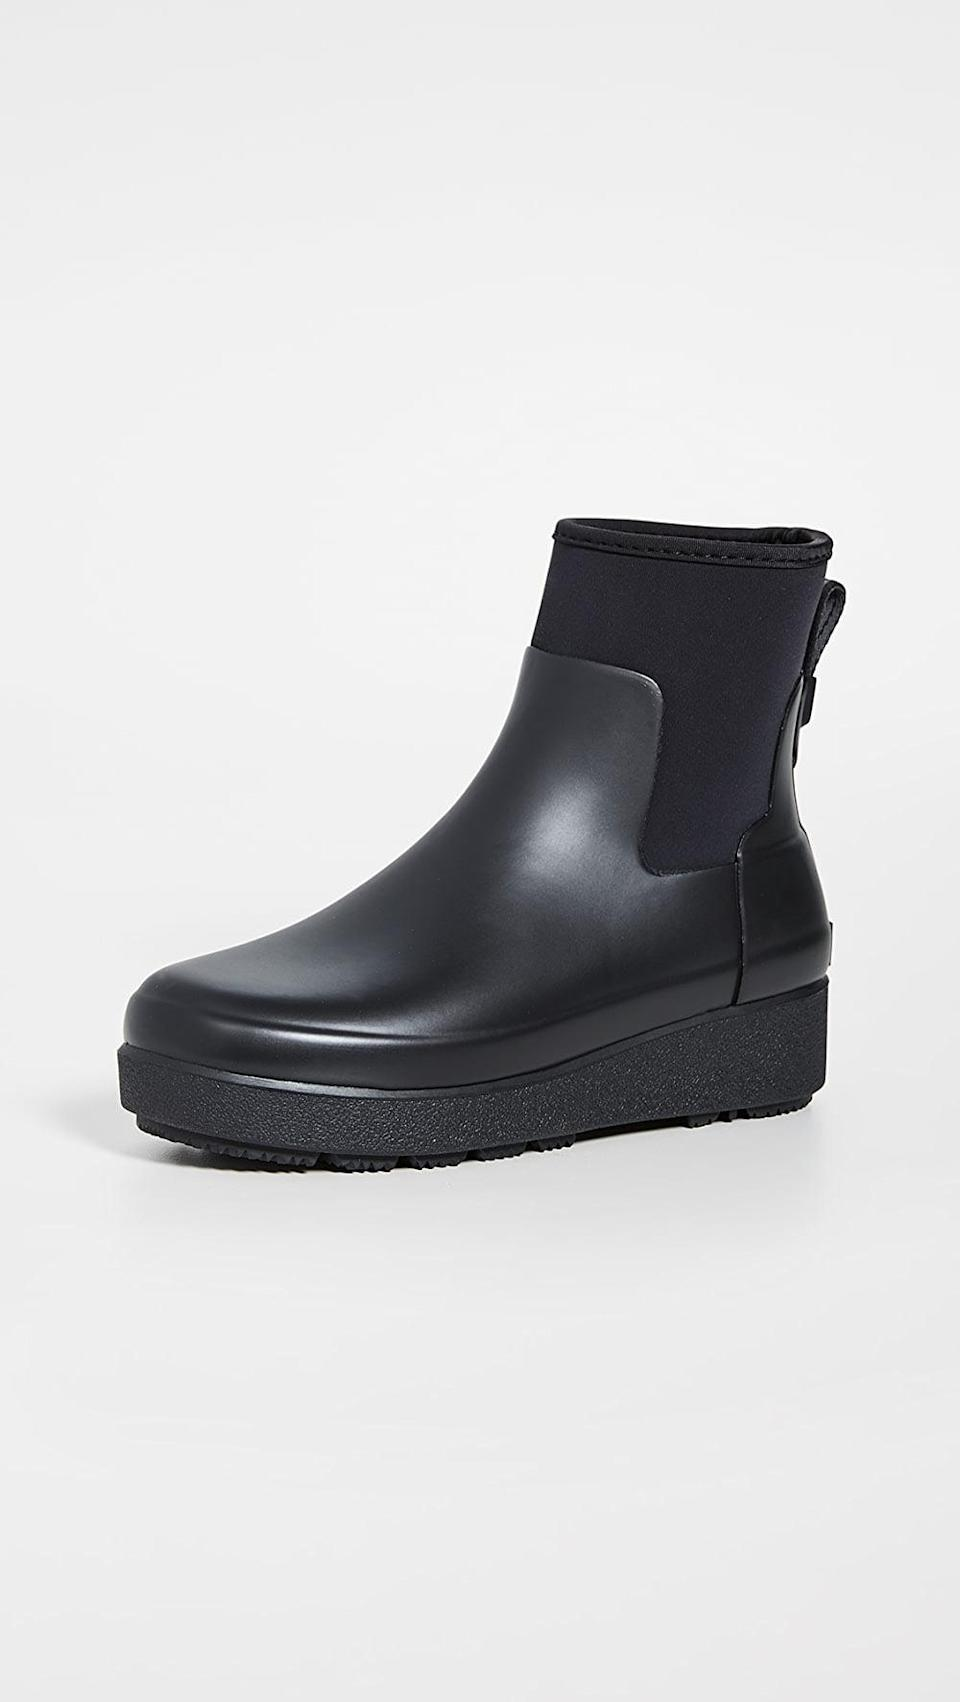 <p>If you need a rain boot, go for these <span>Hunter Boots Refined Creeper Neo Chelsea Boots</span> ($155). We didn't even know they were waterproof when we first saw them, we just loved the look.</p>